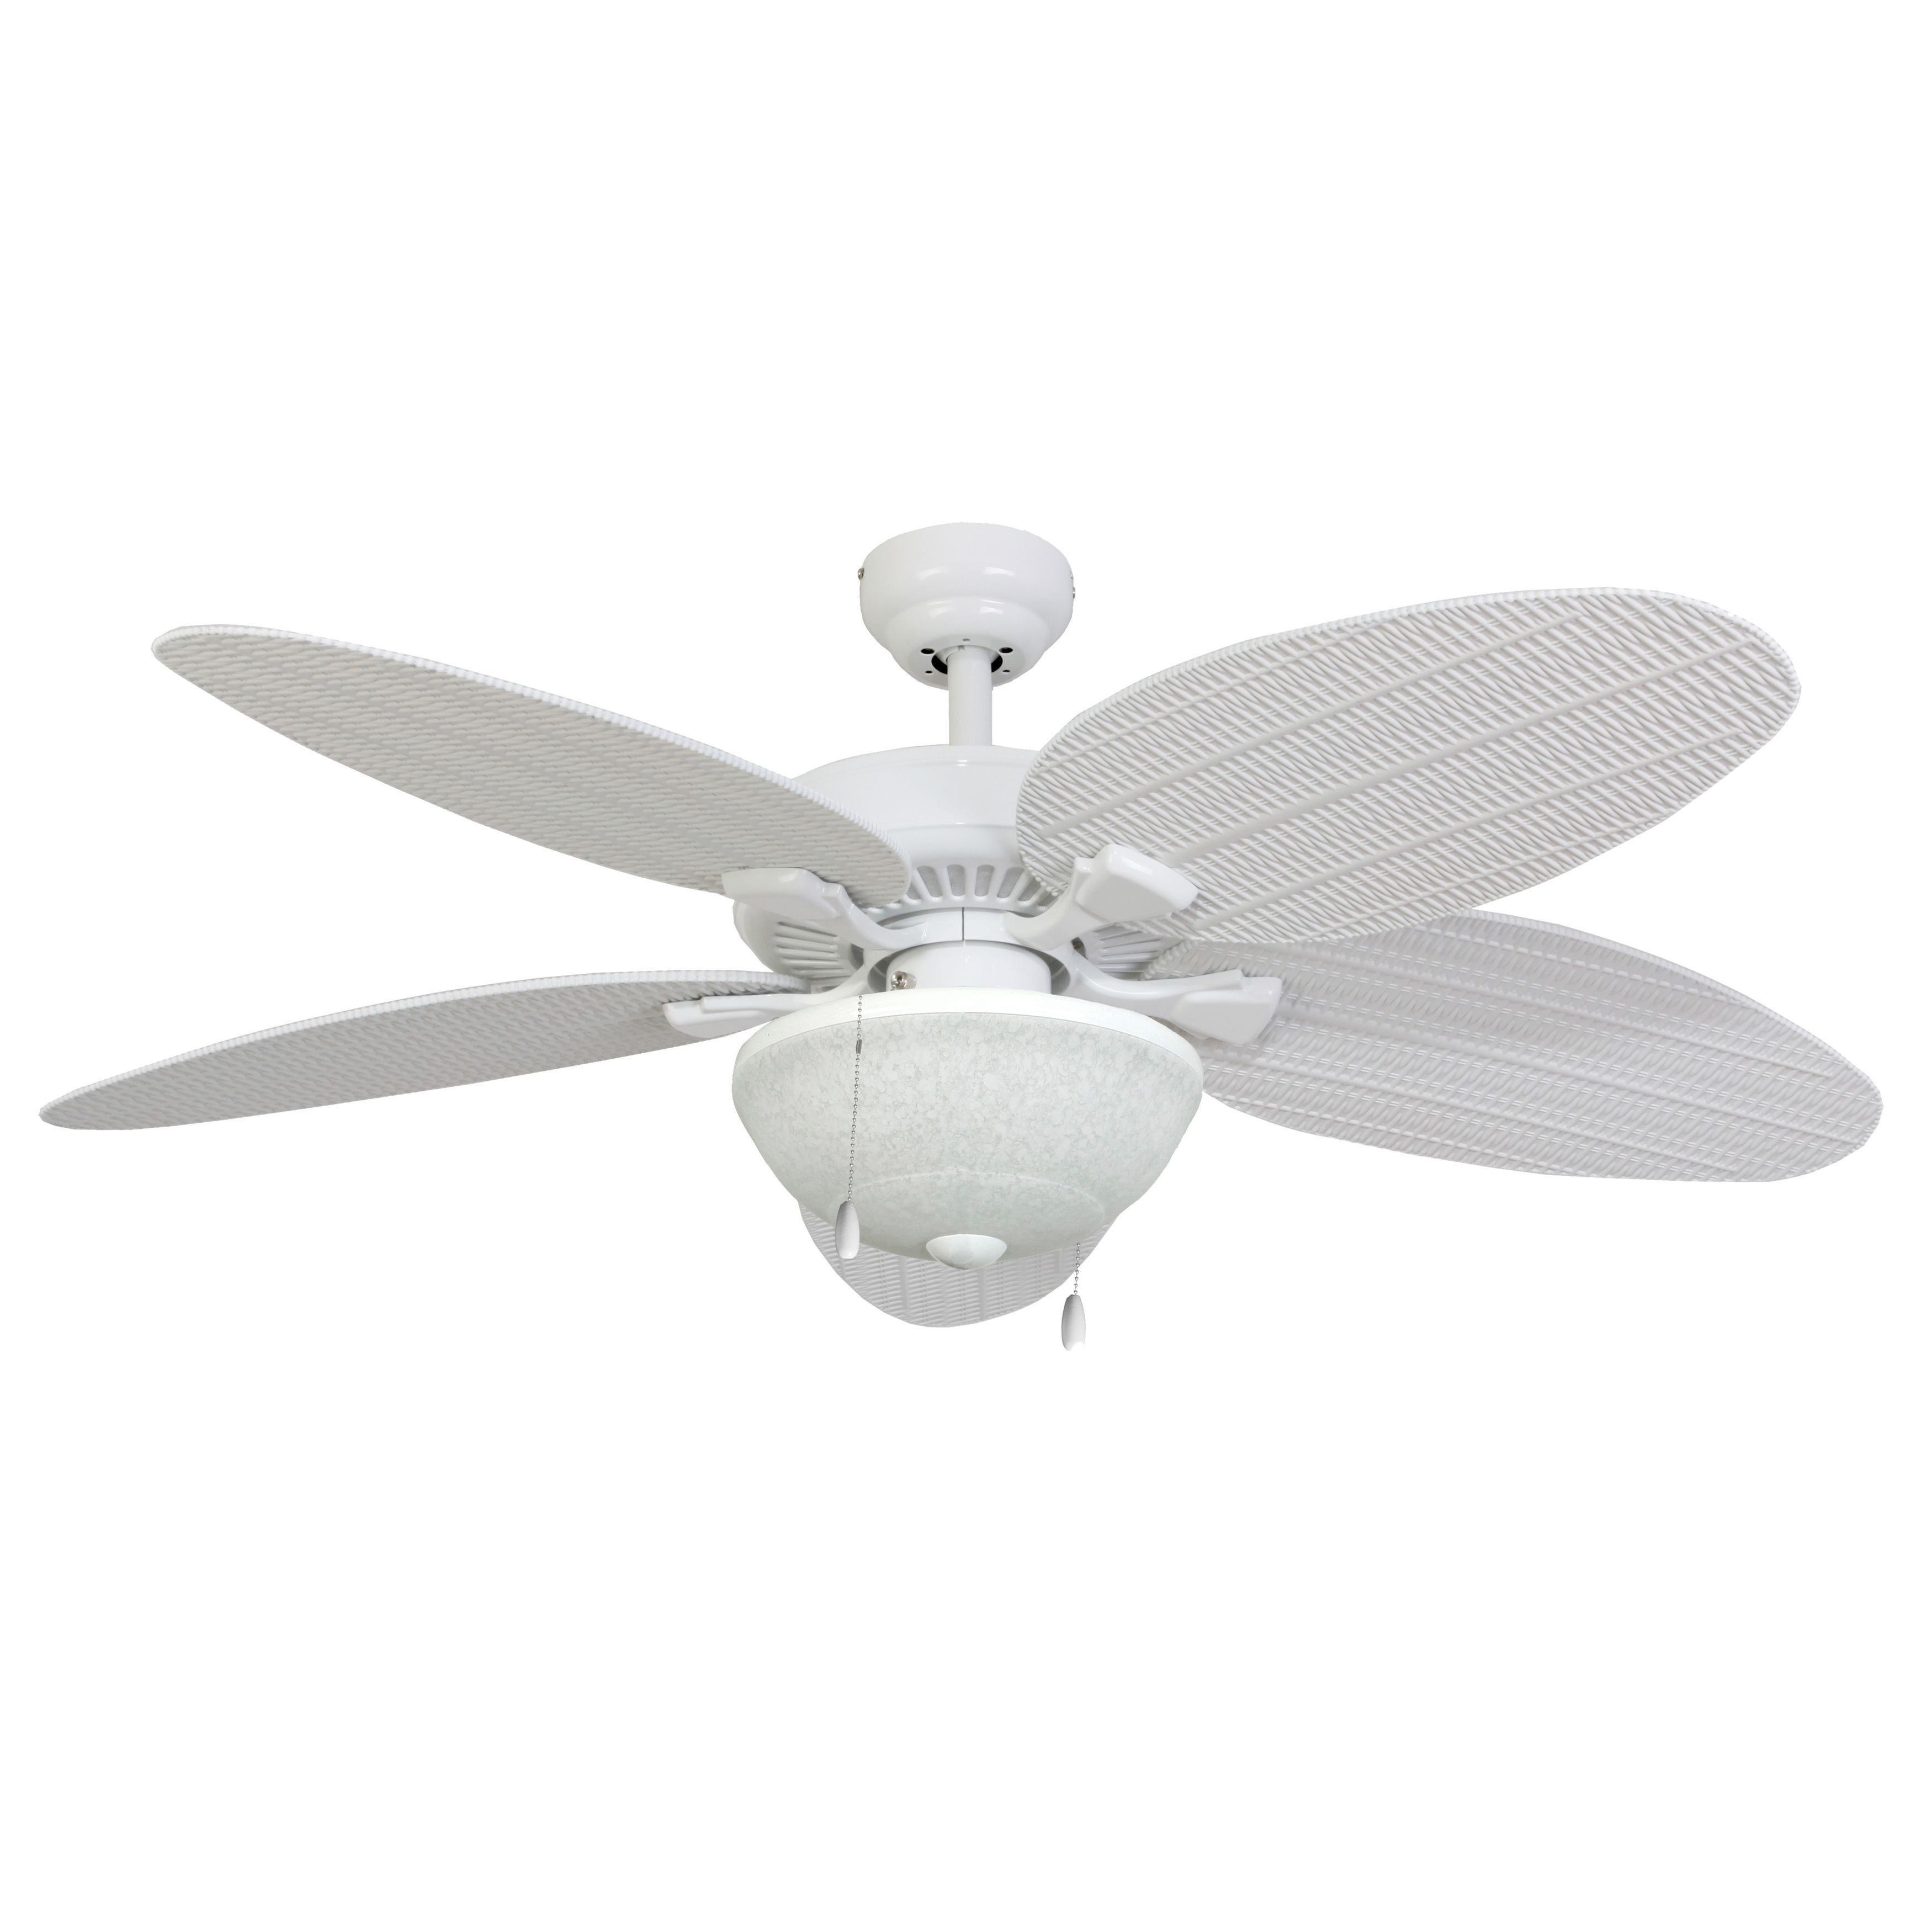 White Tropical Ceiling Fans New Home Depot Ceiling Fans Tropical Insured By Ross